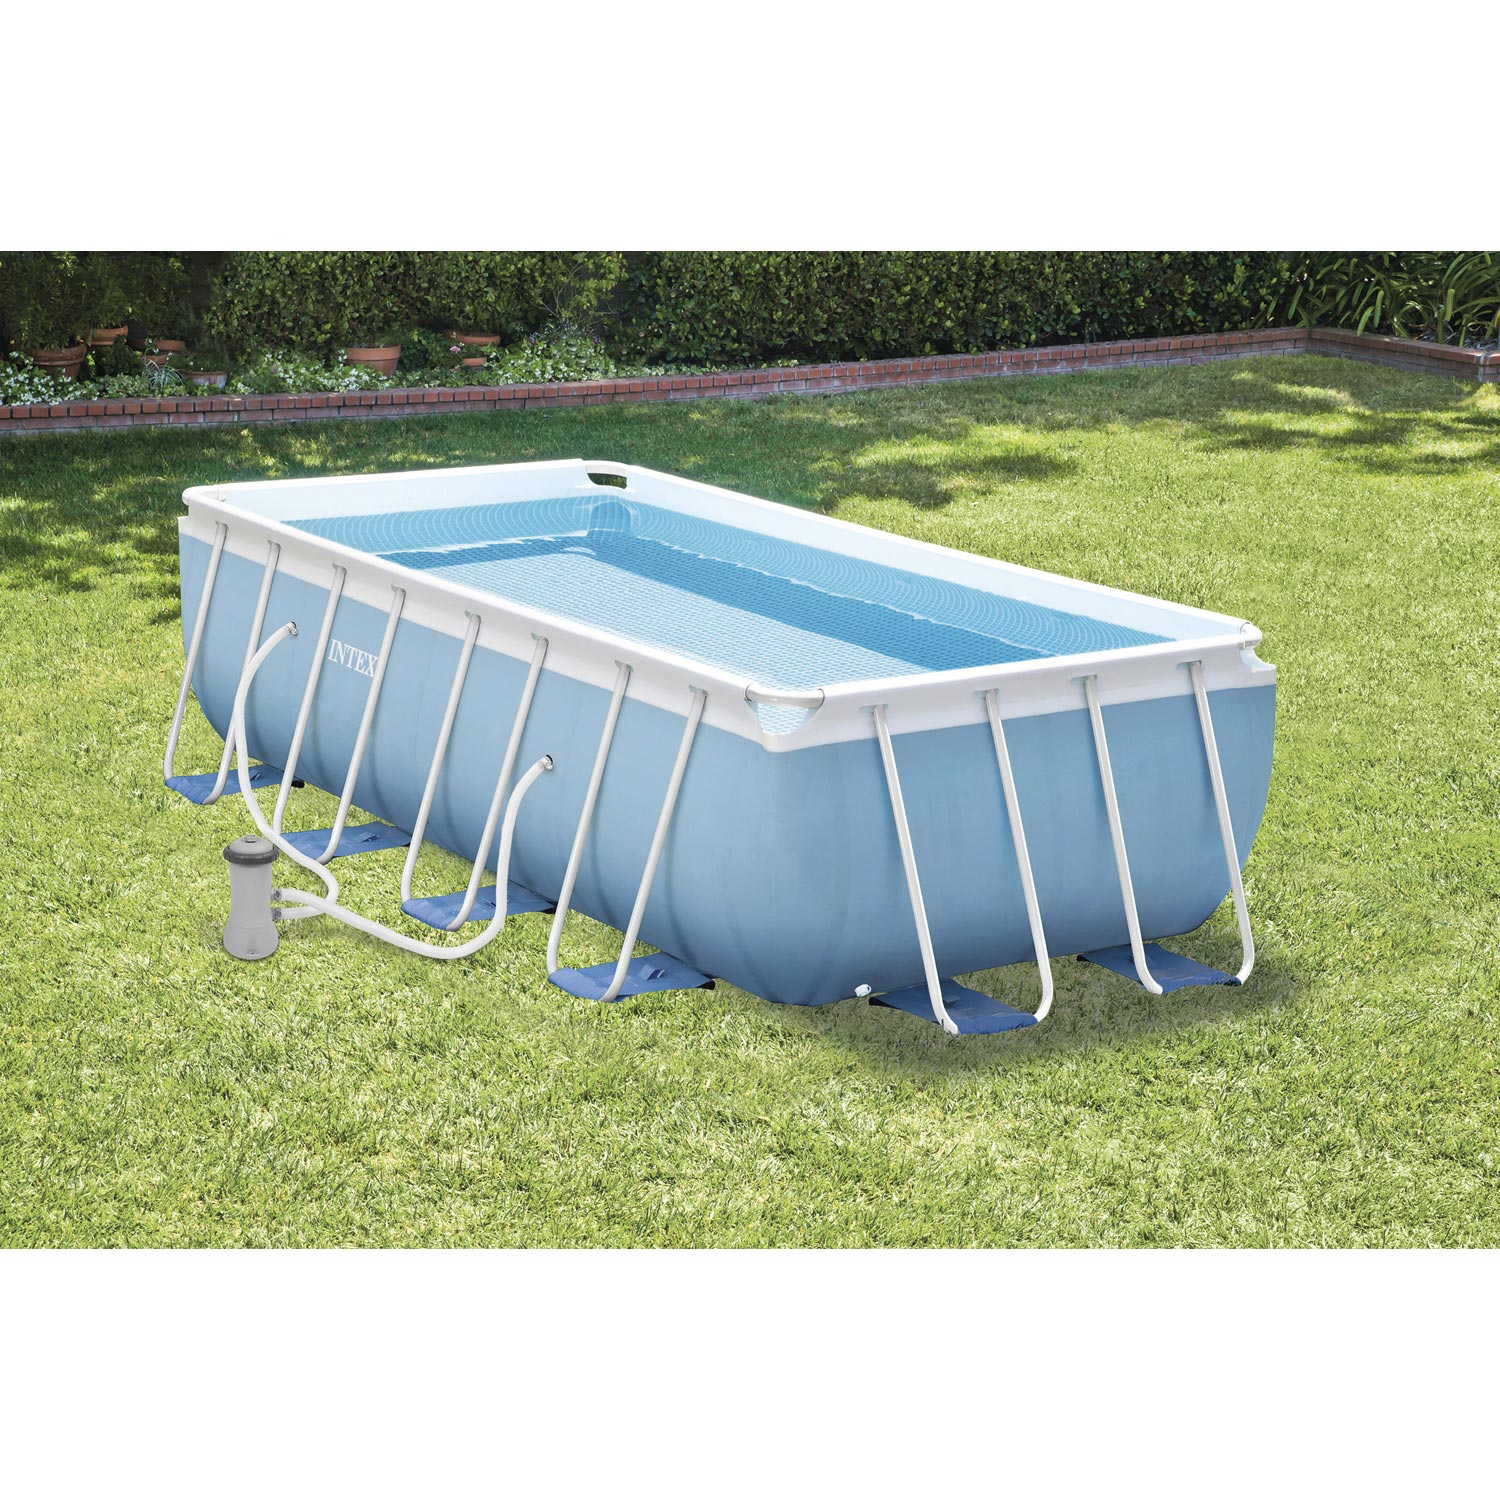 Piscine hors sol autoportante tubulaire prism frame intex for Piscine hors sol 3x4m